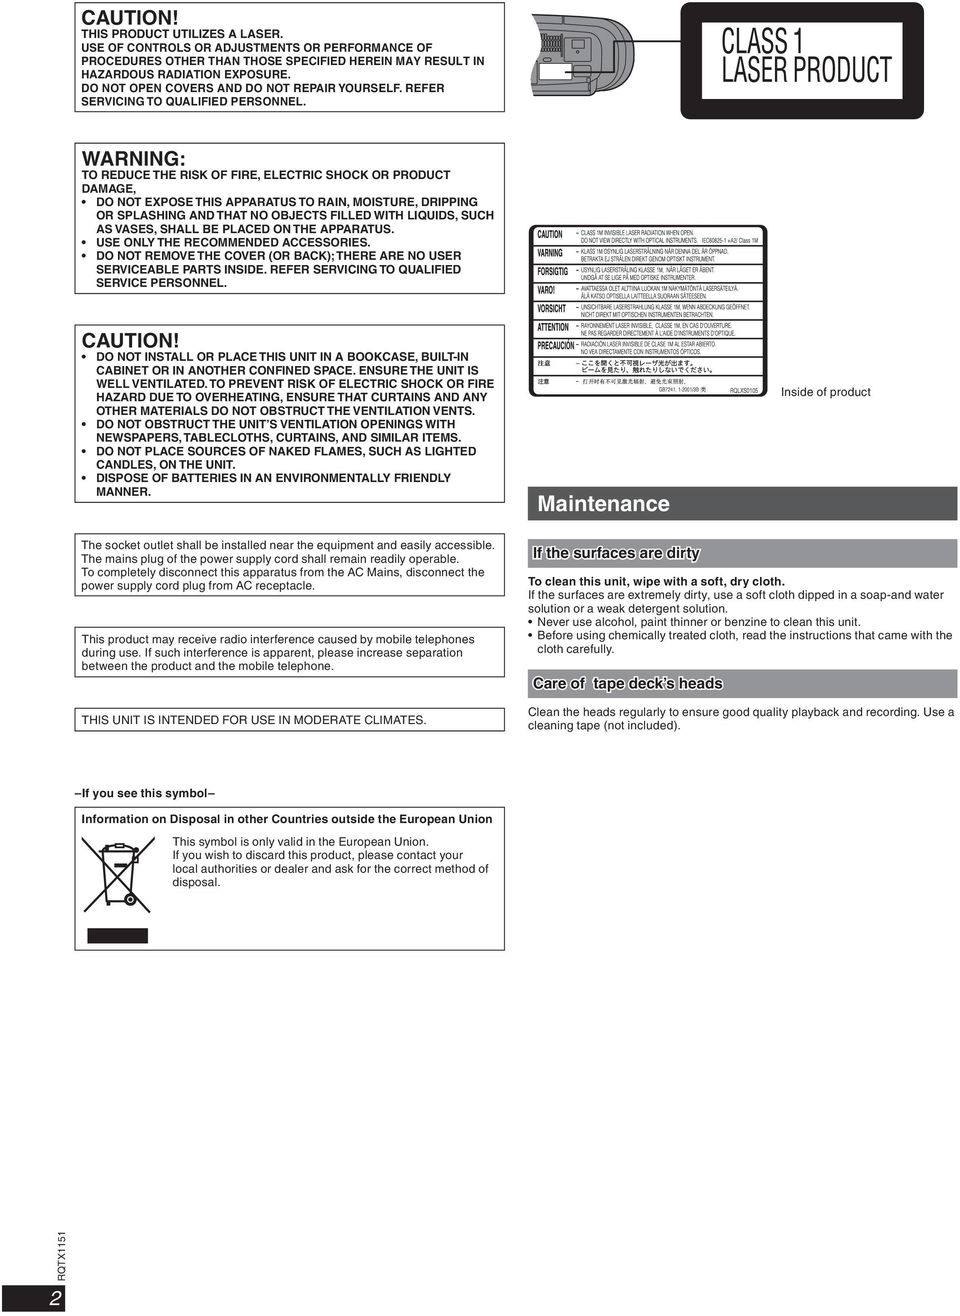 wiring diagram foronic cd mp3 player data wiring diagram preview